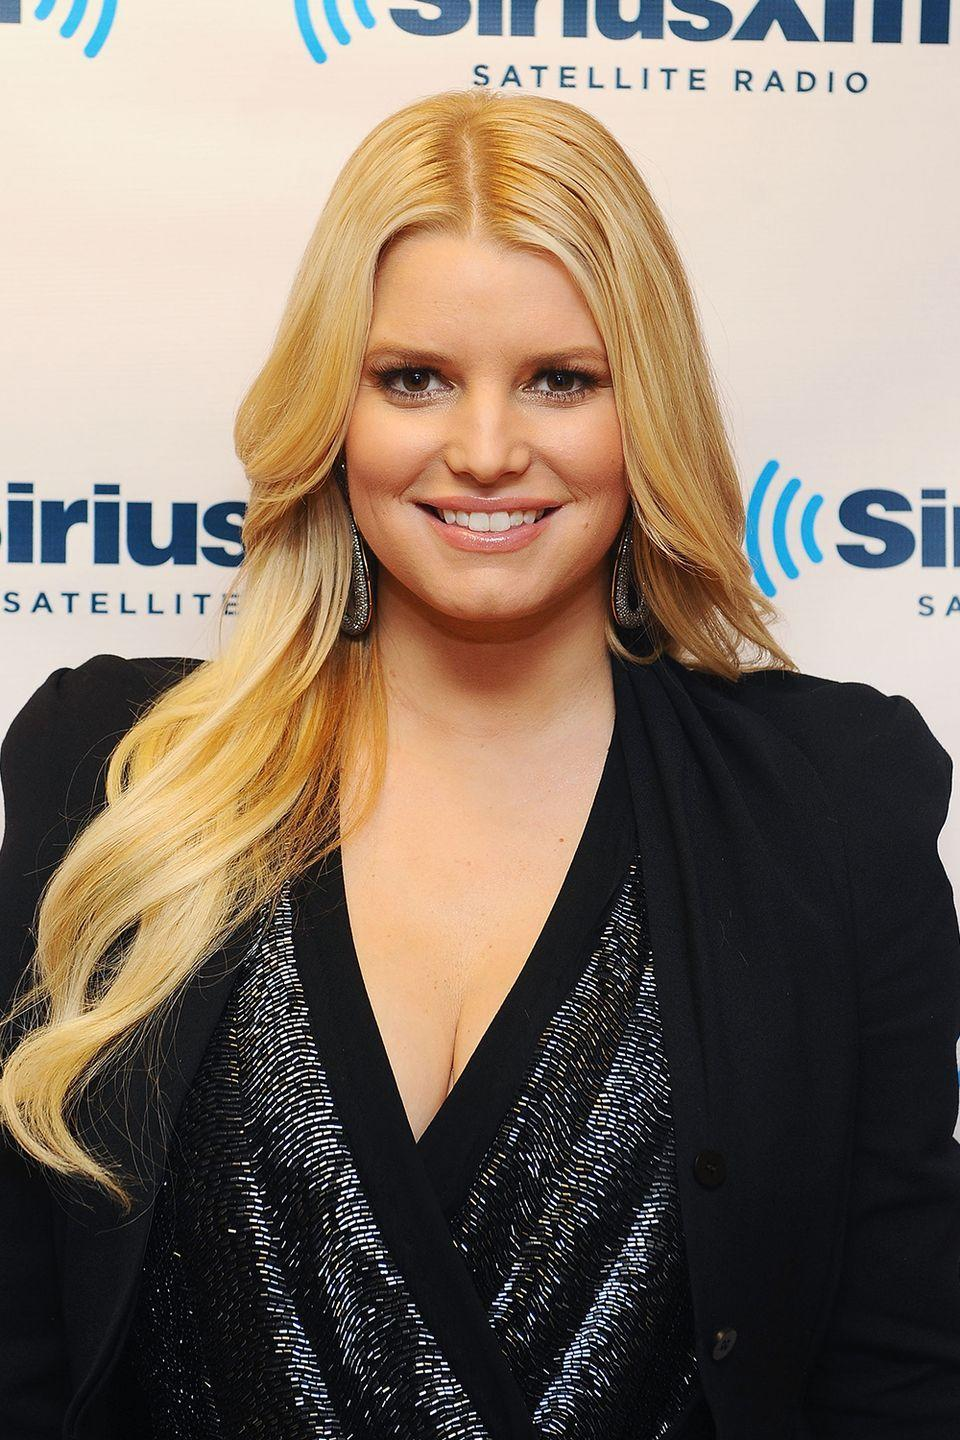 """<p>Jessica Simpson has the best message for people thinking about waiting until marriage: """"Virginity can be cool and sexy,"""" she said in an interview with <em><a href=""""http://people.com/celebrity/sean-lowe-tim-tebow-lolo-jones-celebrity-virgins/#jessica-simpson"""" rel=""""nofollow noopener"""" target=""""_blank"""" data-ylk=""""slk:People"""" class=""""link rapid-noclick-resp"""">People</a> </em>in 2000. Jessica has never been shy about her reason for staying abstinent until marriage. </p><p>""""My virginity is something I stand strong in,"""" she said. Her then-boyfriend, now ex-husband, Nick Lachey chimed in and admitted, """"It's not always easy. But I do respect it.""""<br></p>"""